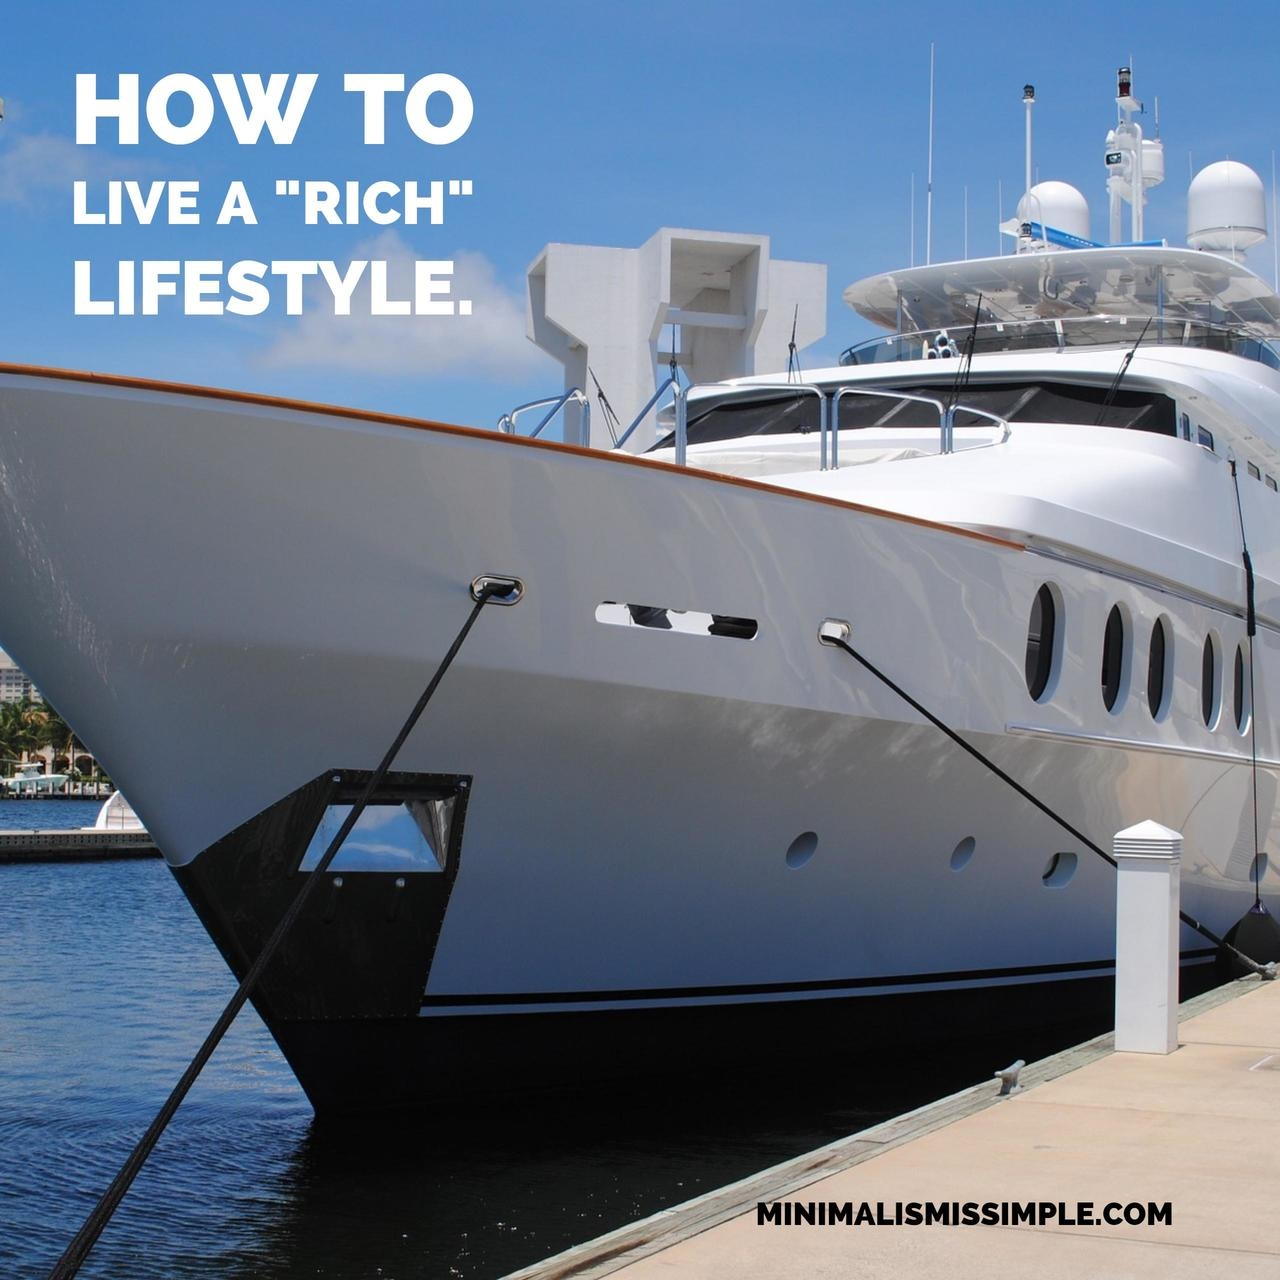 how to live a rich lifestyle minimalismissimple.com